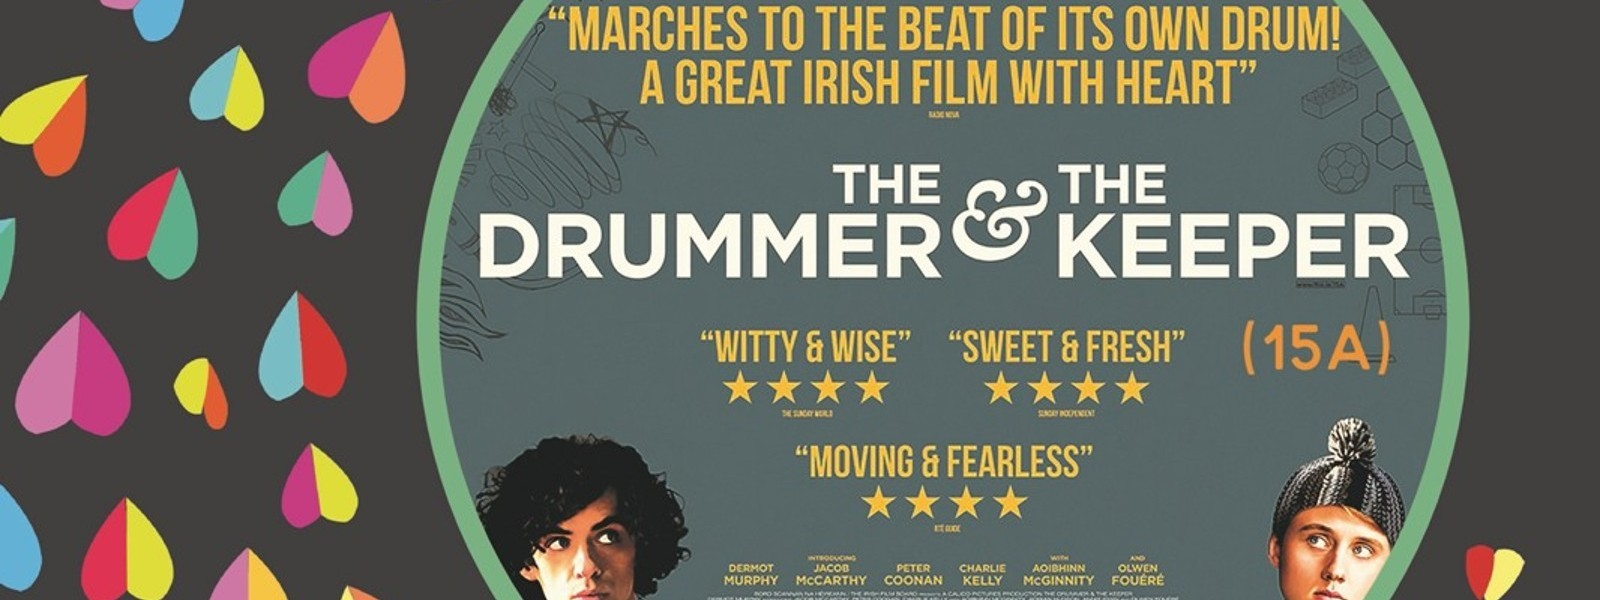 First Fortnight in partnership with IFI National presents The Drummer & The Keeper Thursday 11 January @ 7.00 pm